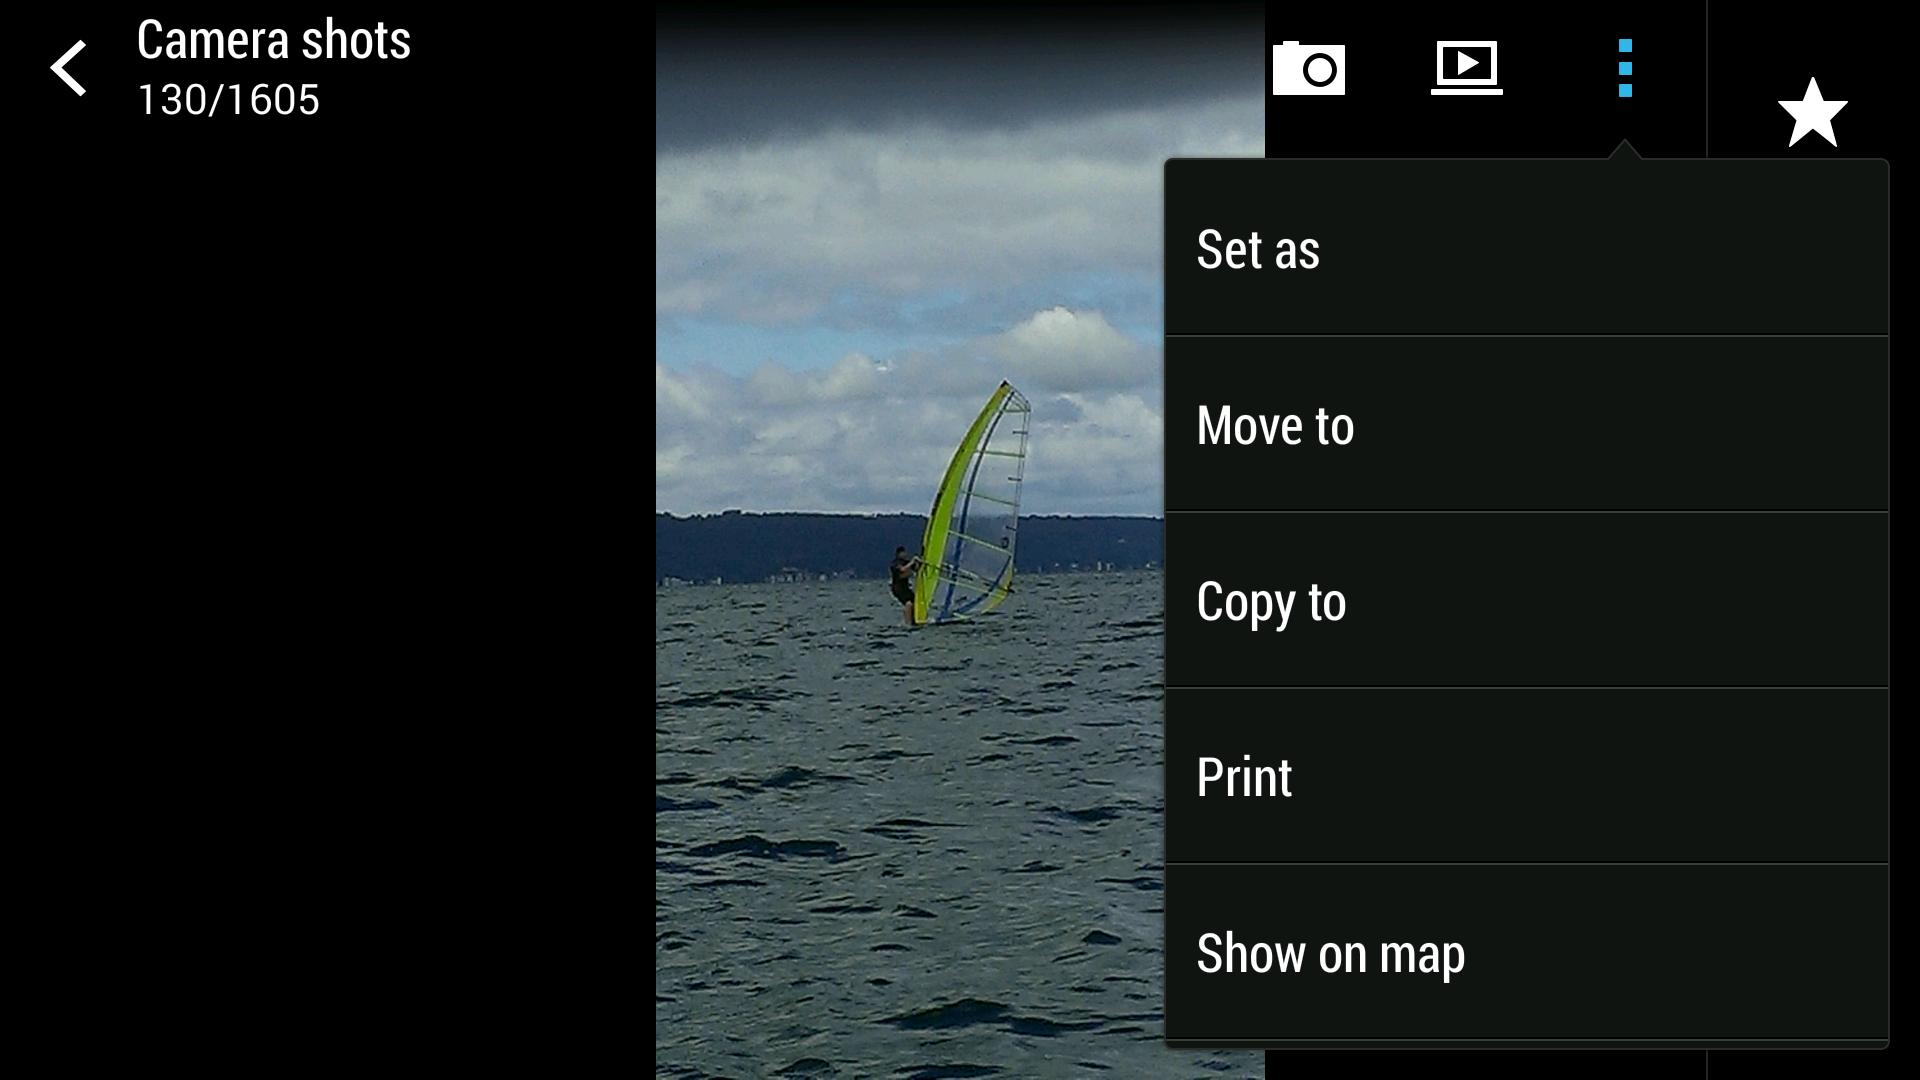 Xerox Print Service for Android - APK Download